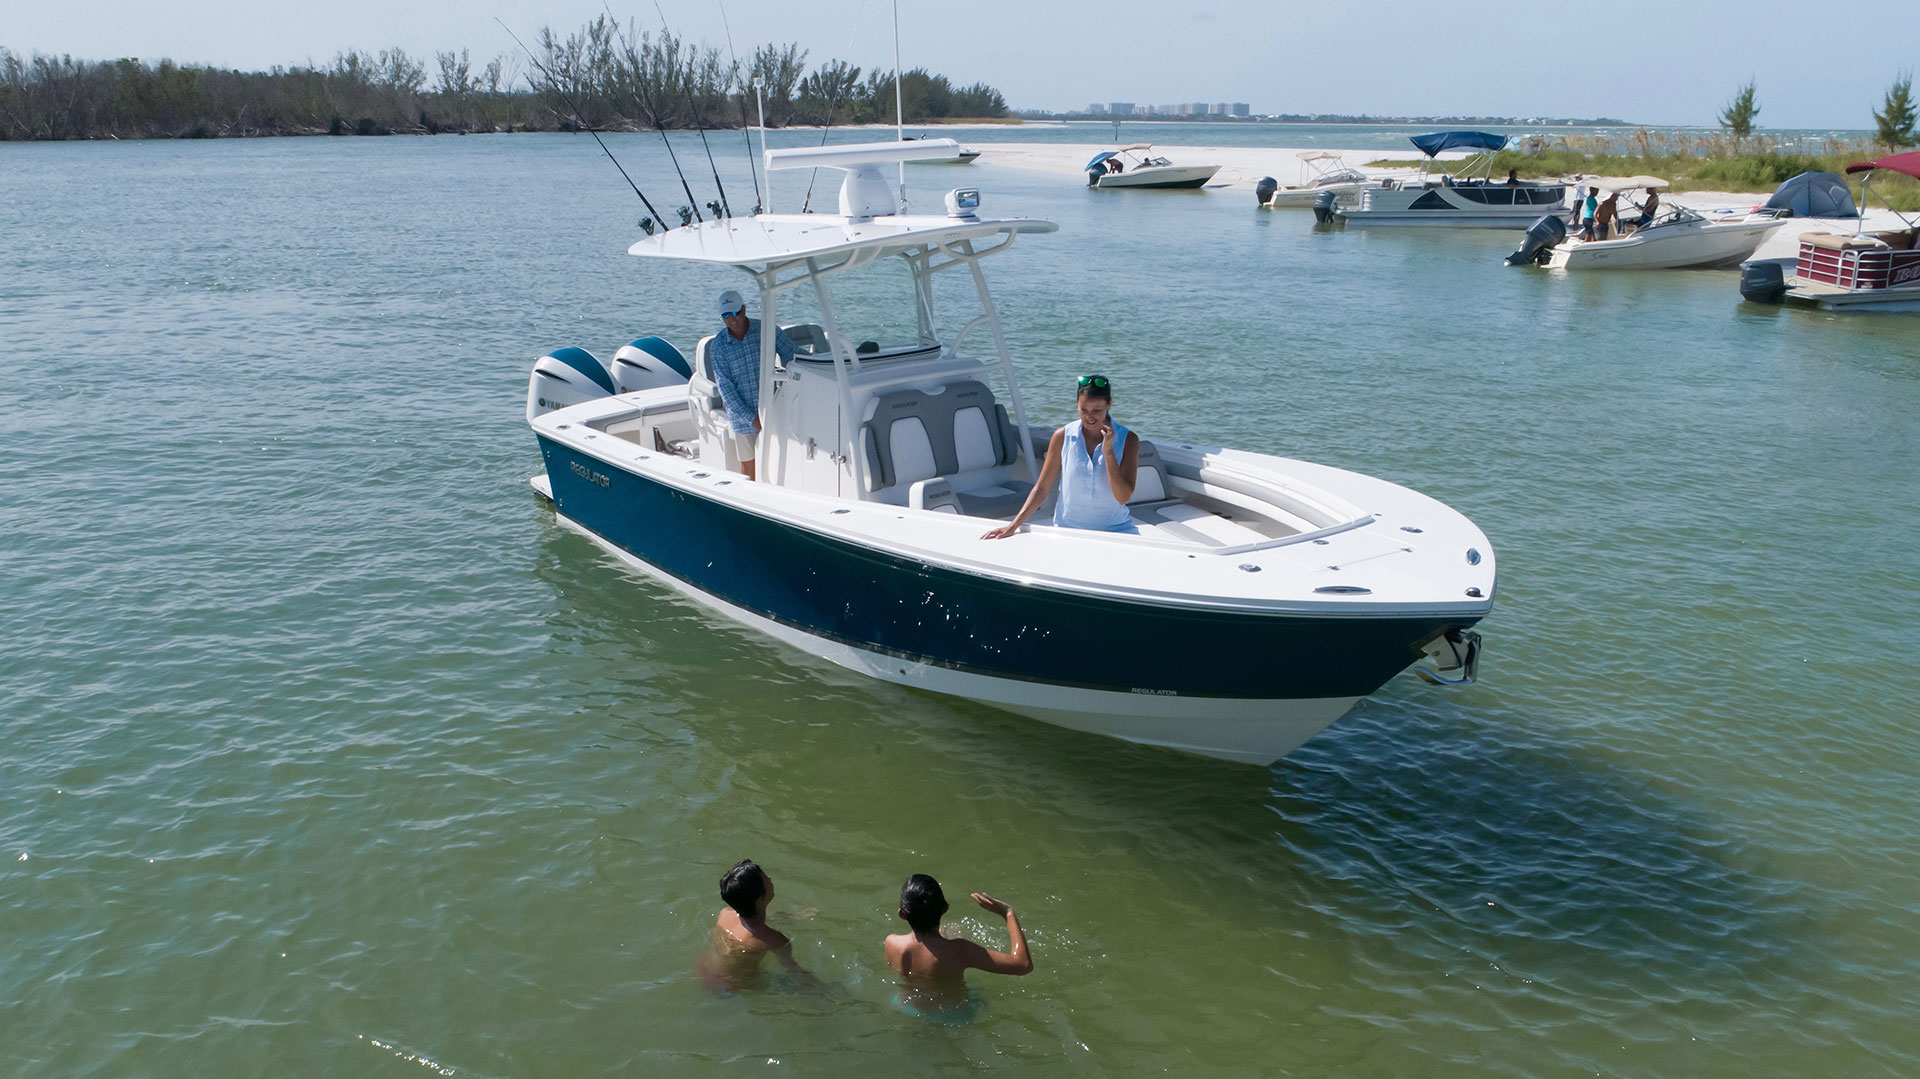 How To: Selling Your Boat Privately - Ocean House Marina